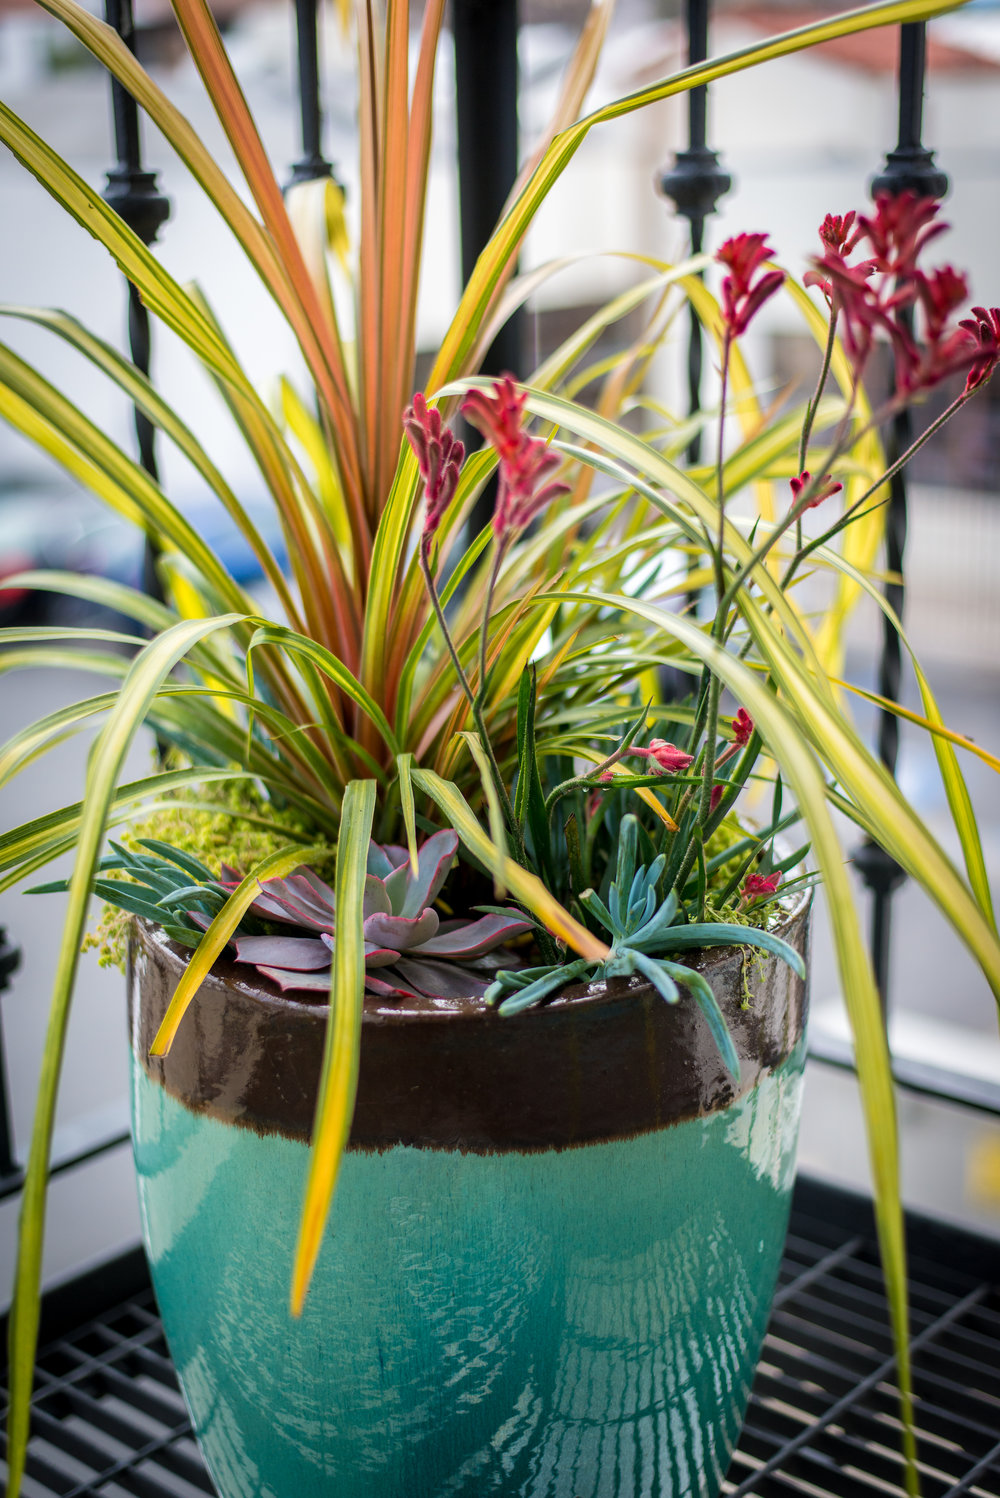 23_Succulent_Kangaroo_Paw_Grass_Outdoor_Business_EL.jpg